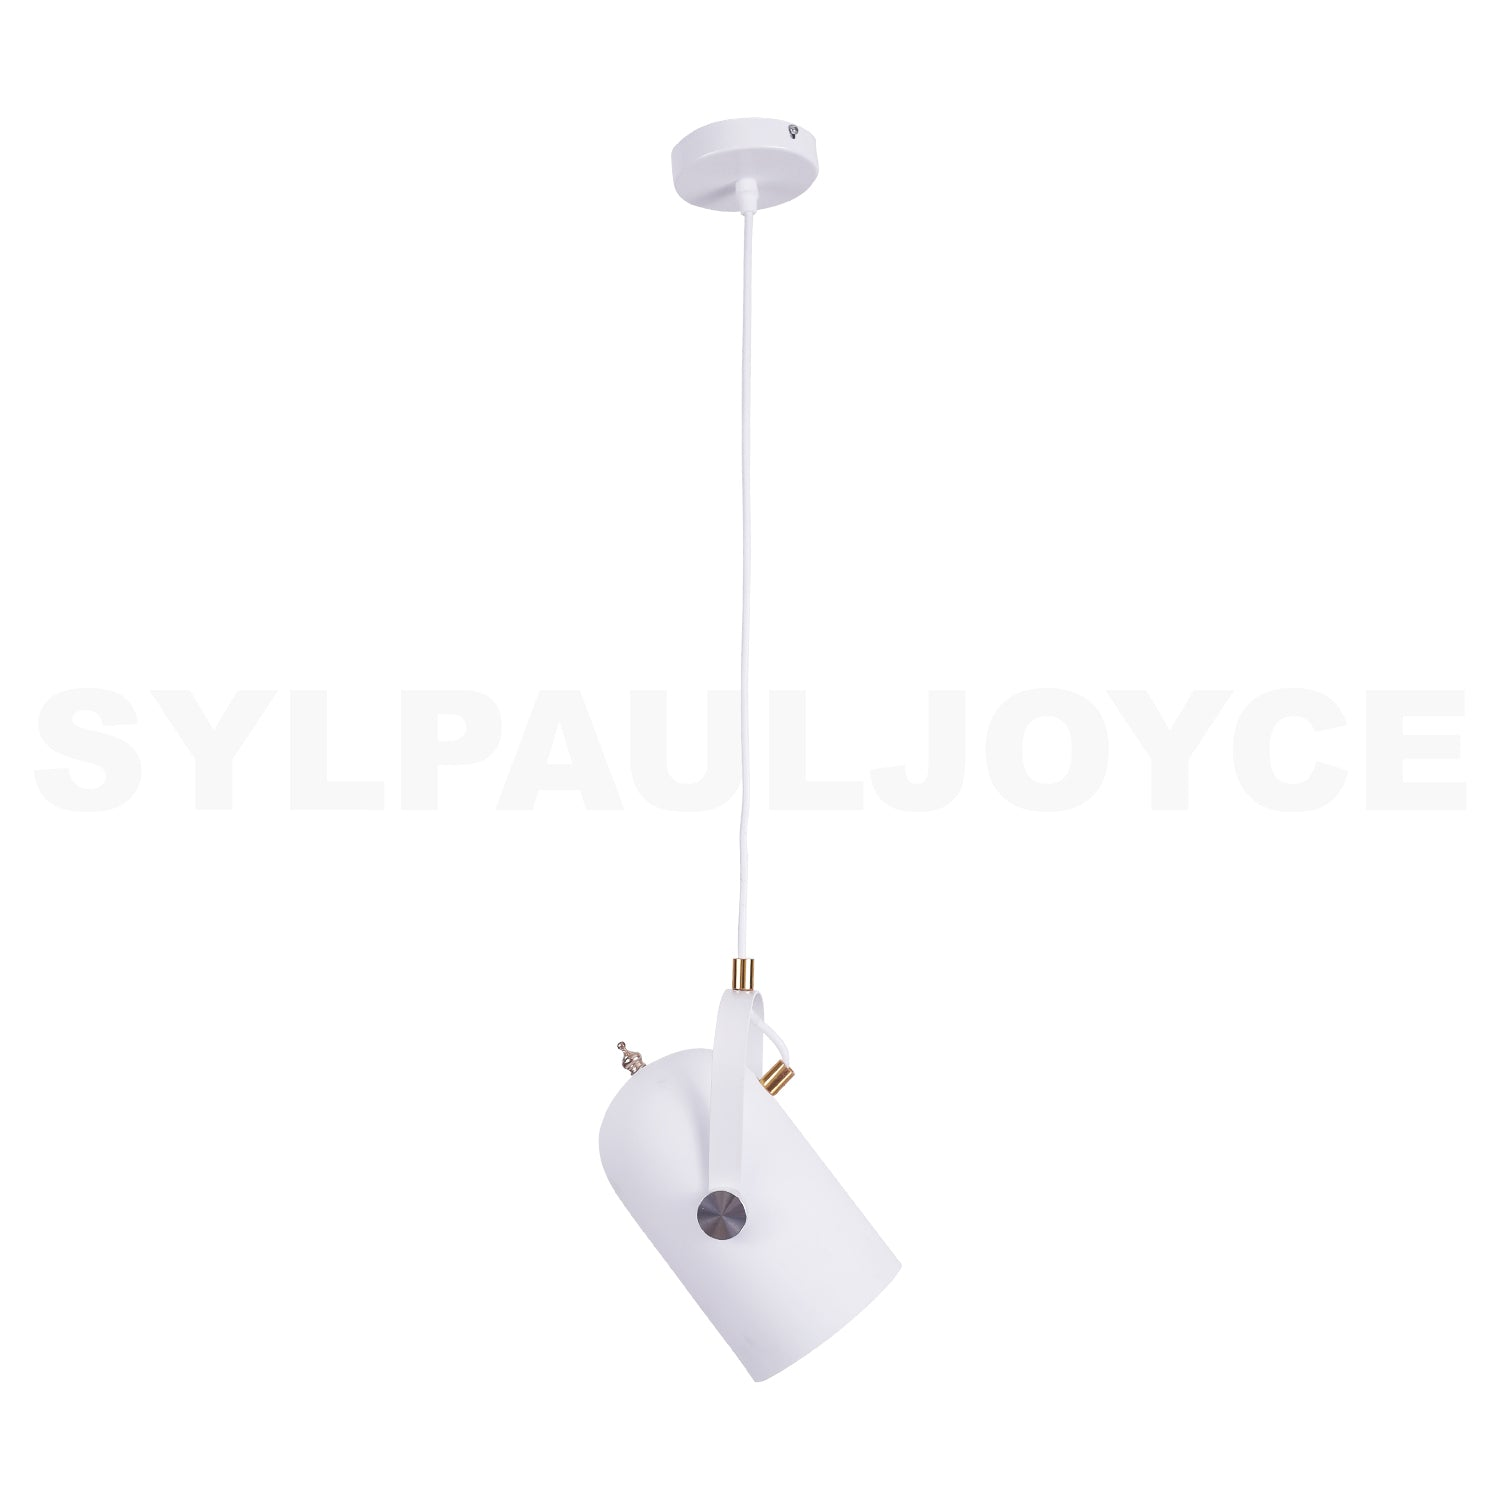 7130-1 Drop Light - Sylpauljoyce Furniture, Lights & Decor